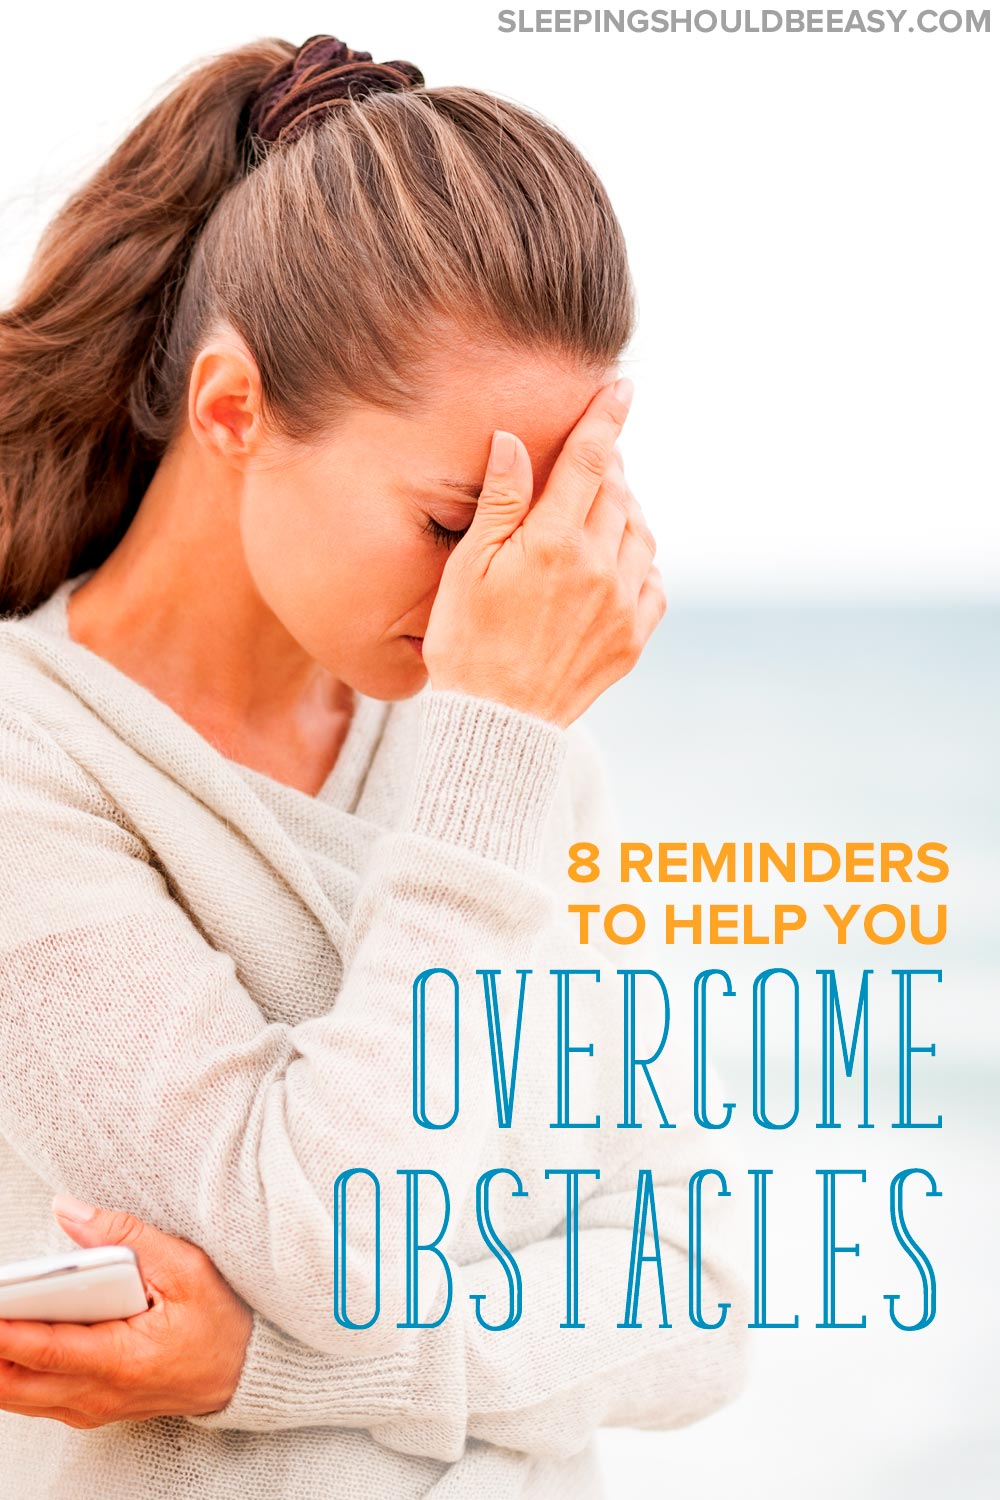 Are you struggling with an obstacle? These 8 reminders to help you overcome obstacles will get through the challenges.